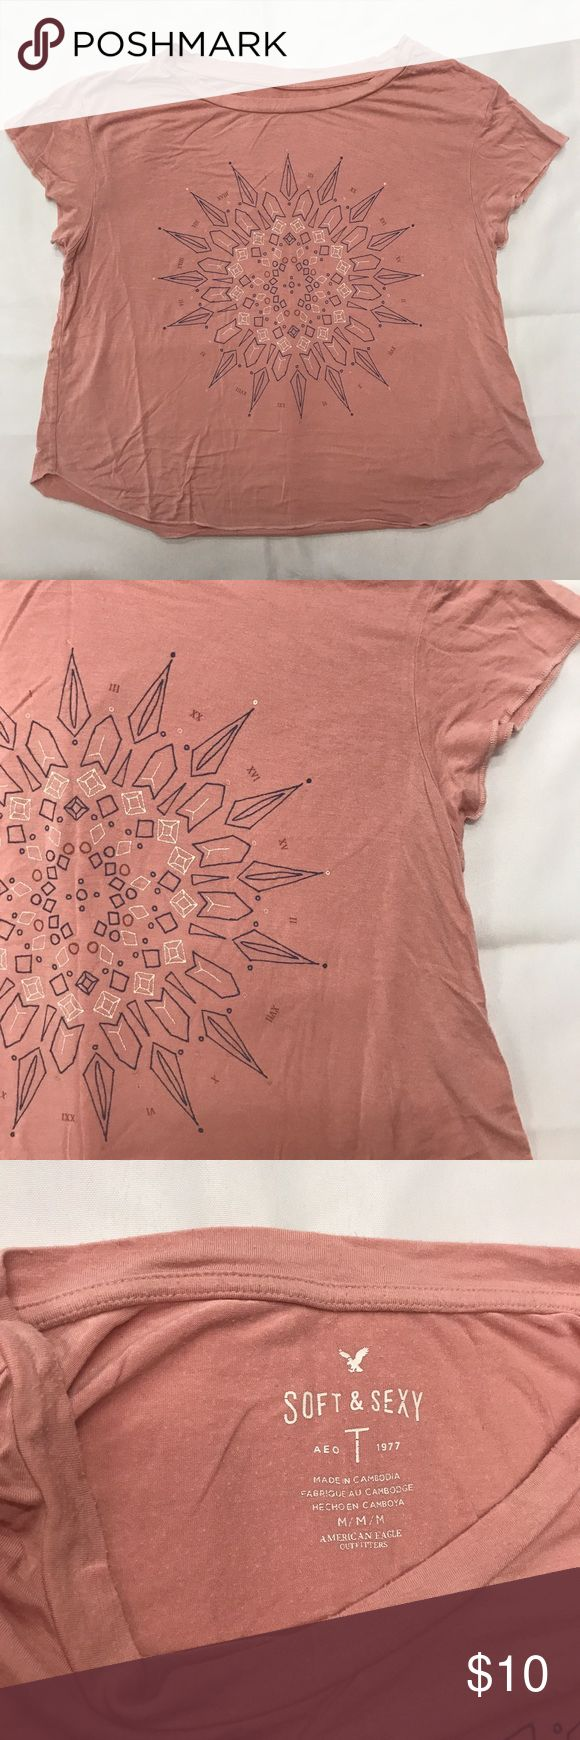 American Eagle blush pink soft & sexy tee American Eagle Outfitters soft & sexy tee in blush pink with a bohemian design. Women's size Medium in excellent used condition with no flaws. Clean and ready to ship! Check out my other listings for a bundle discount! American Eagle Outfitters Tops Tees - Short Sleeve